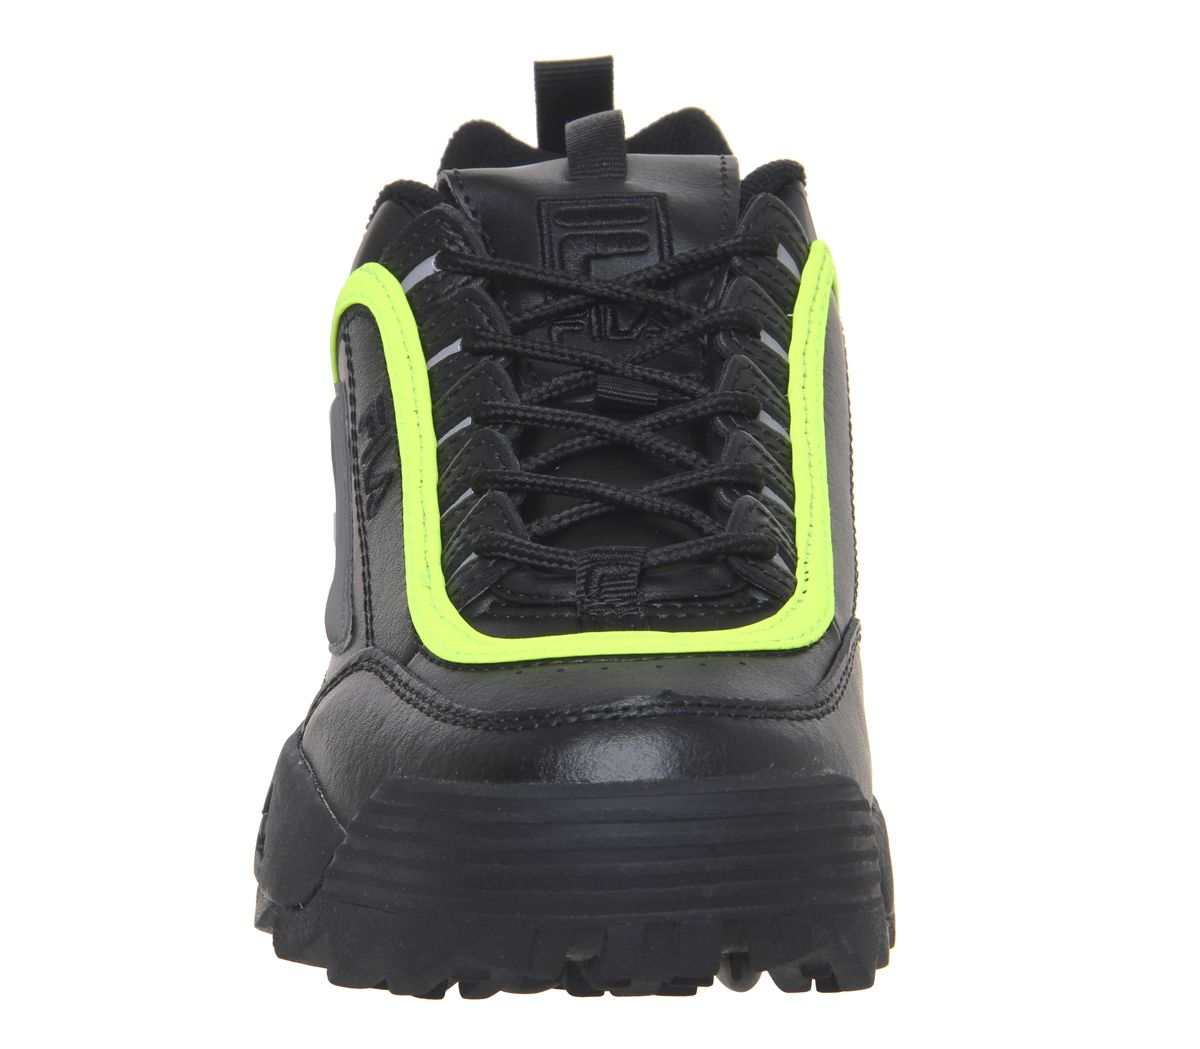 ee4ad9f1dc6 Womens Fila Disruptor Ii Trainers Black Black Safety Yellow Trainers ...